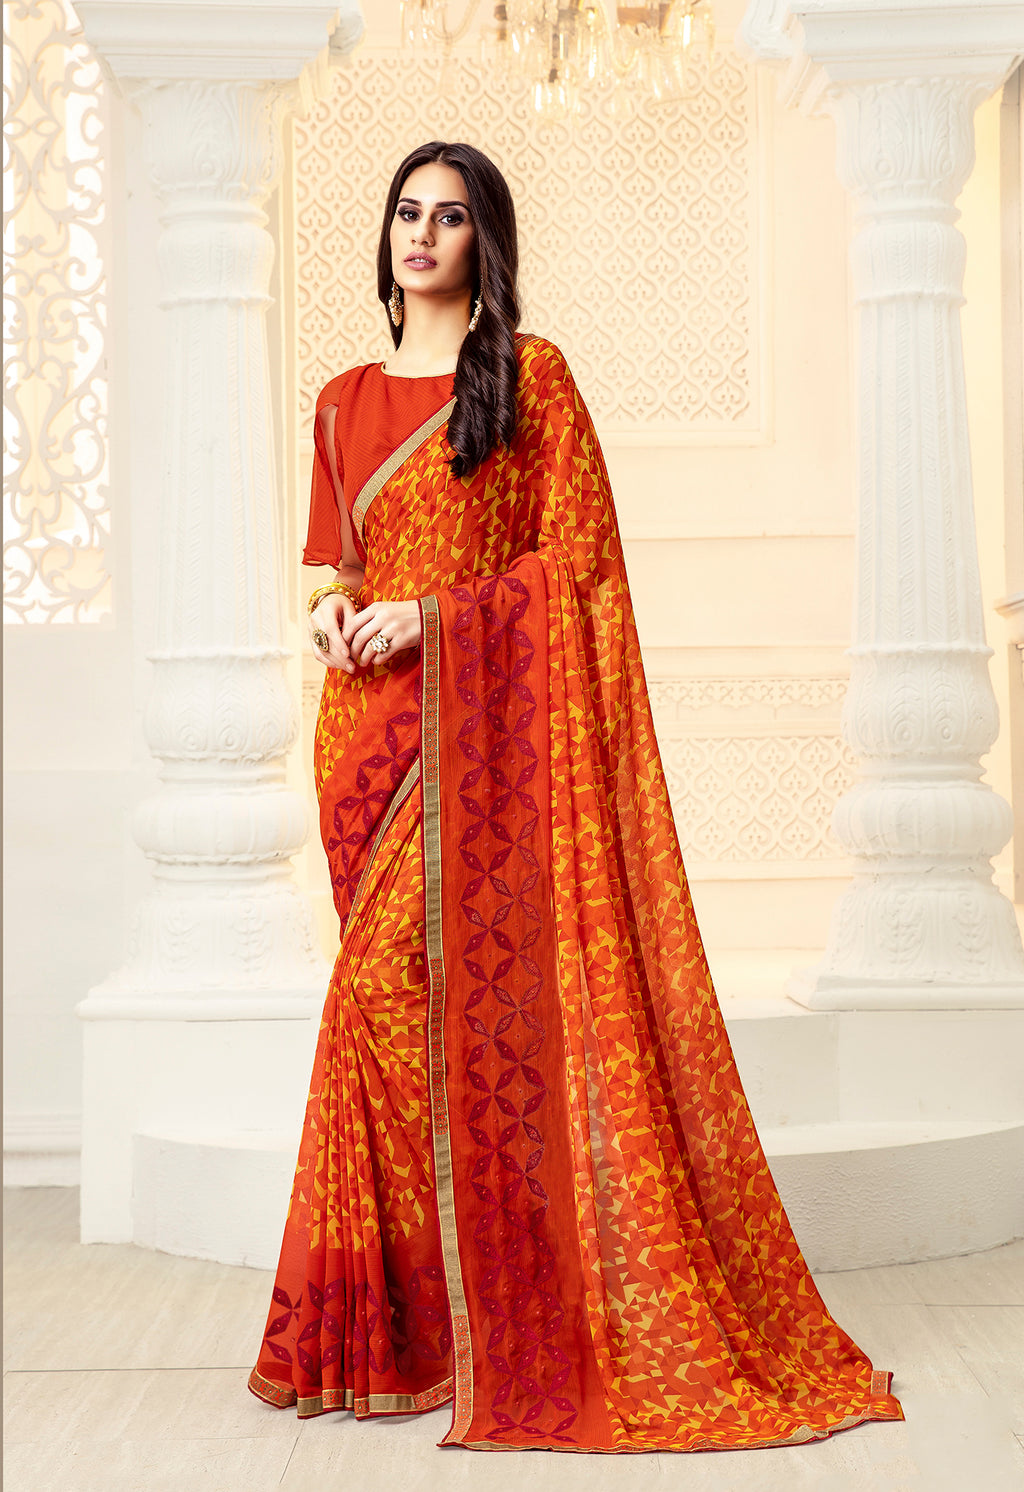 Sanskar Blossom  Printed Georgette  Saree With Blouse Piece  (Orange) By Indians Boutique